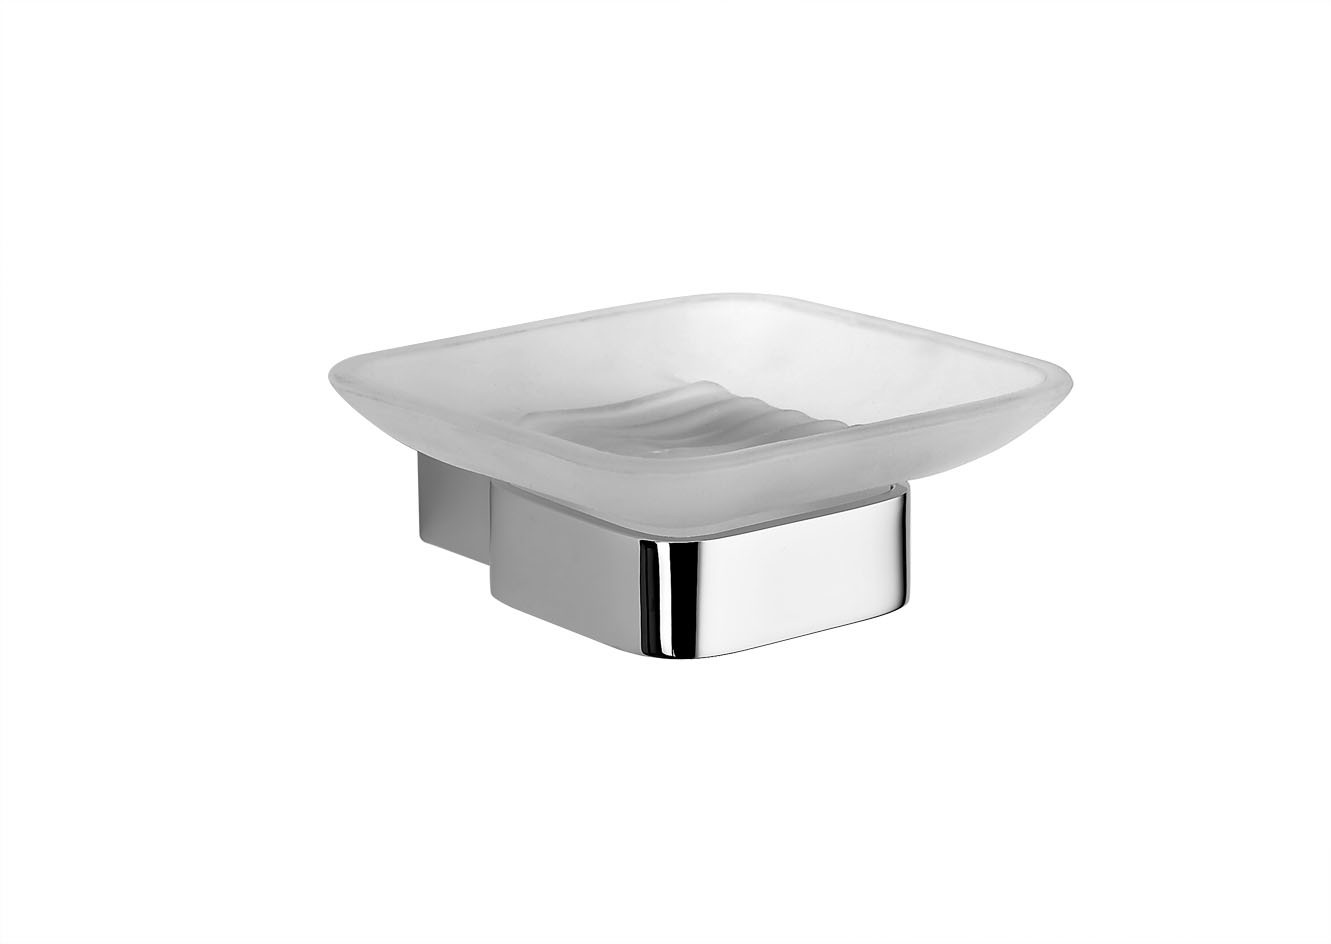 Stylish Square Bathroom Soap Dish Bathroom Accessories